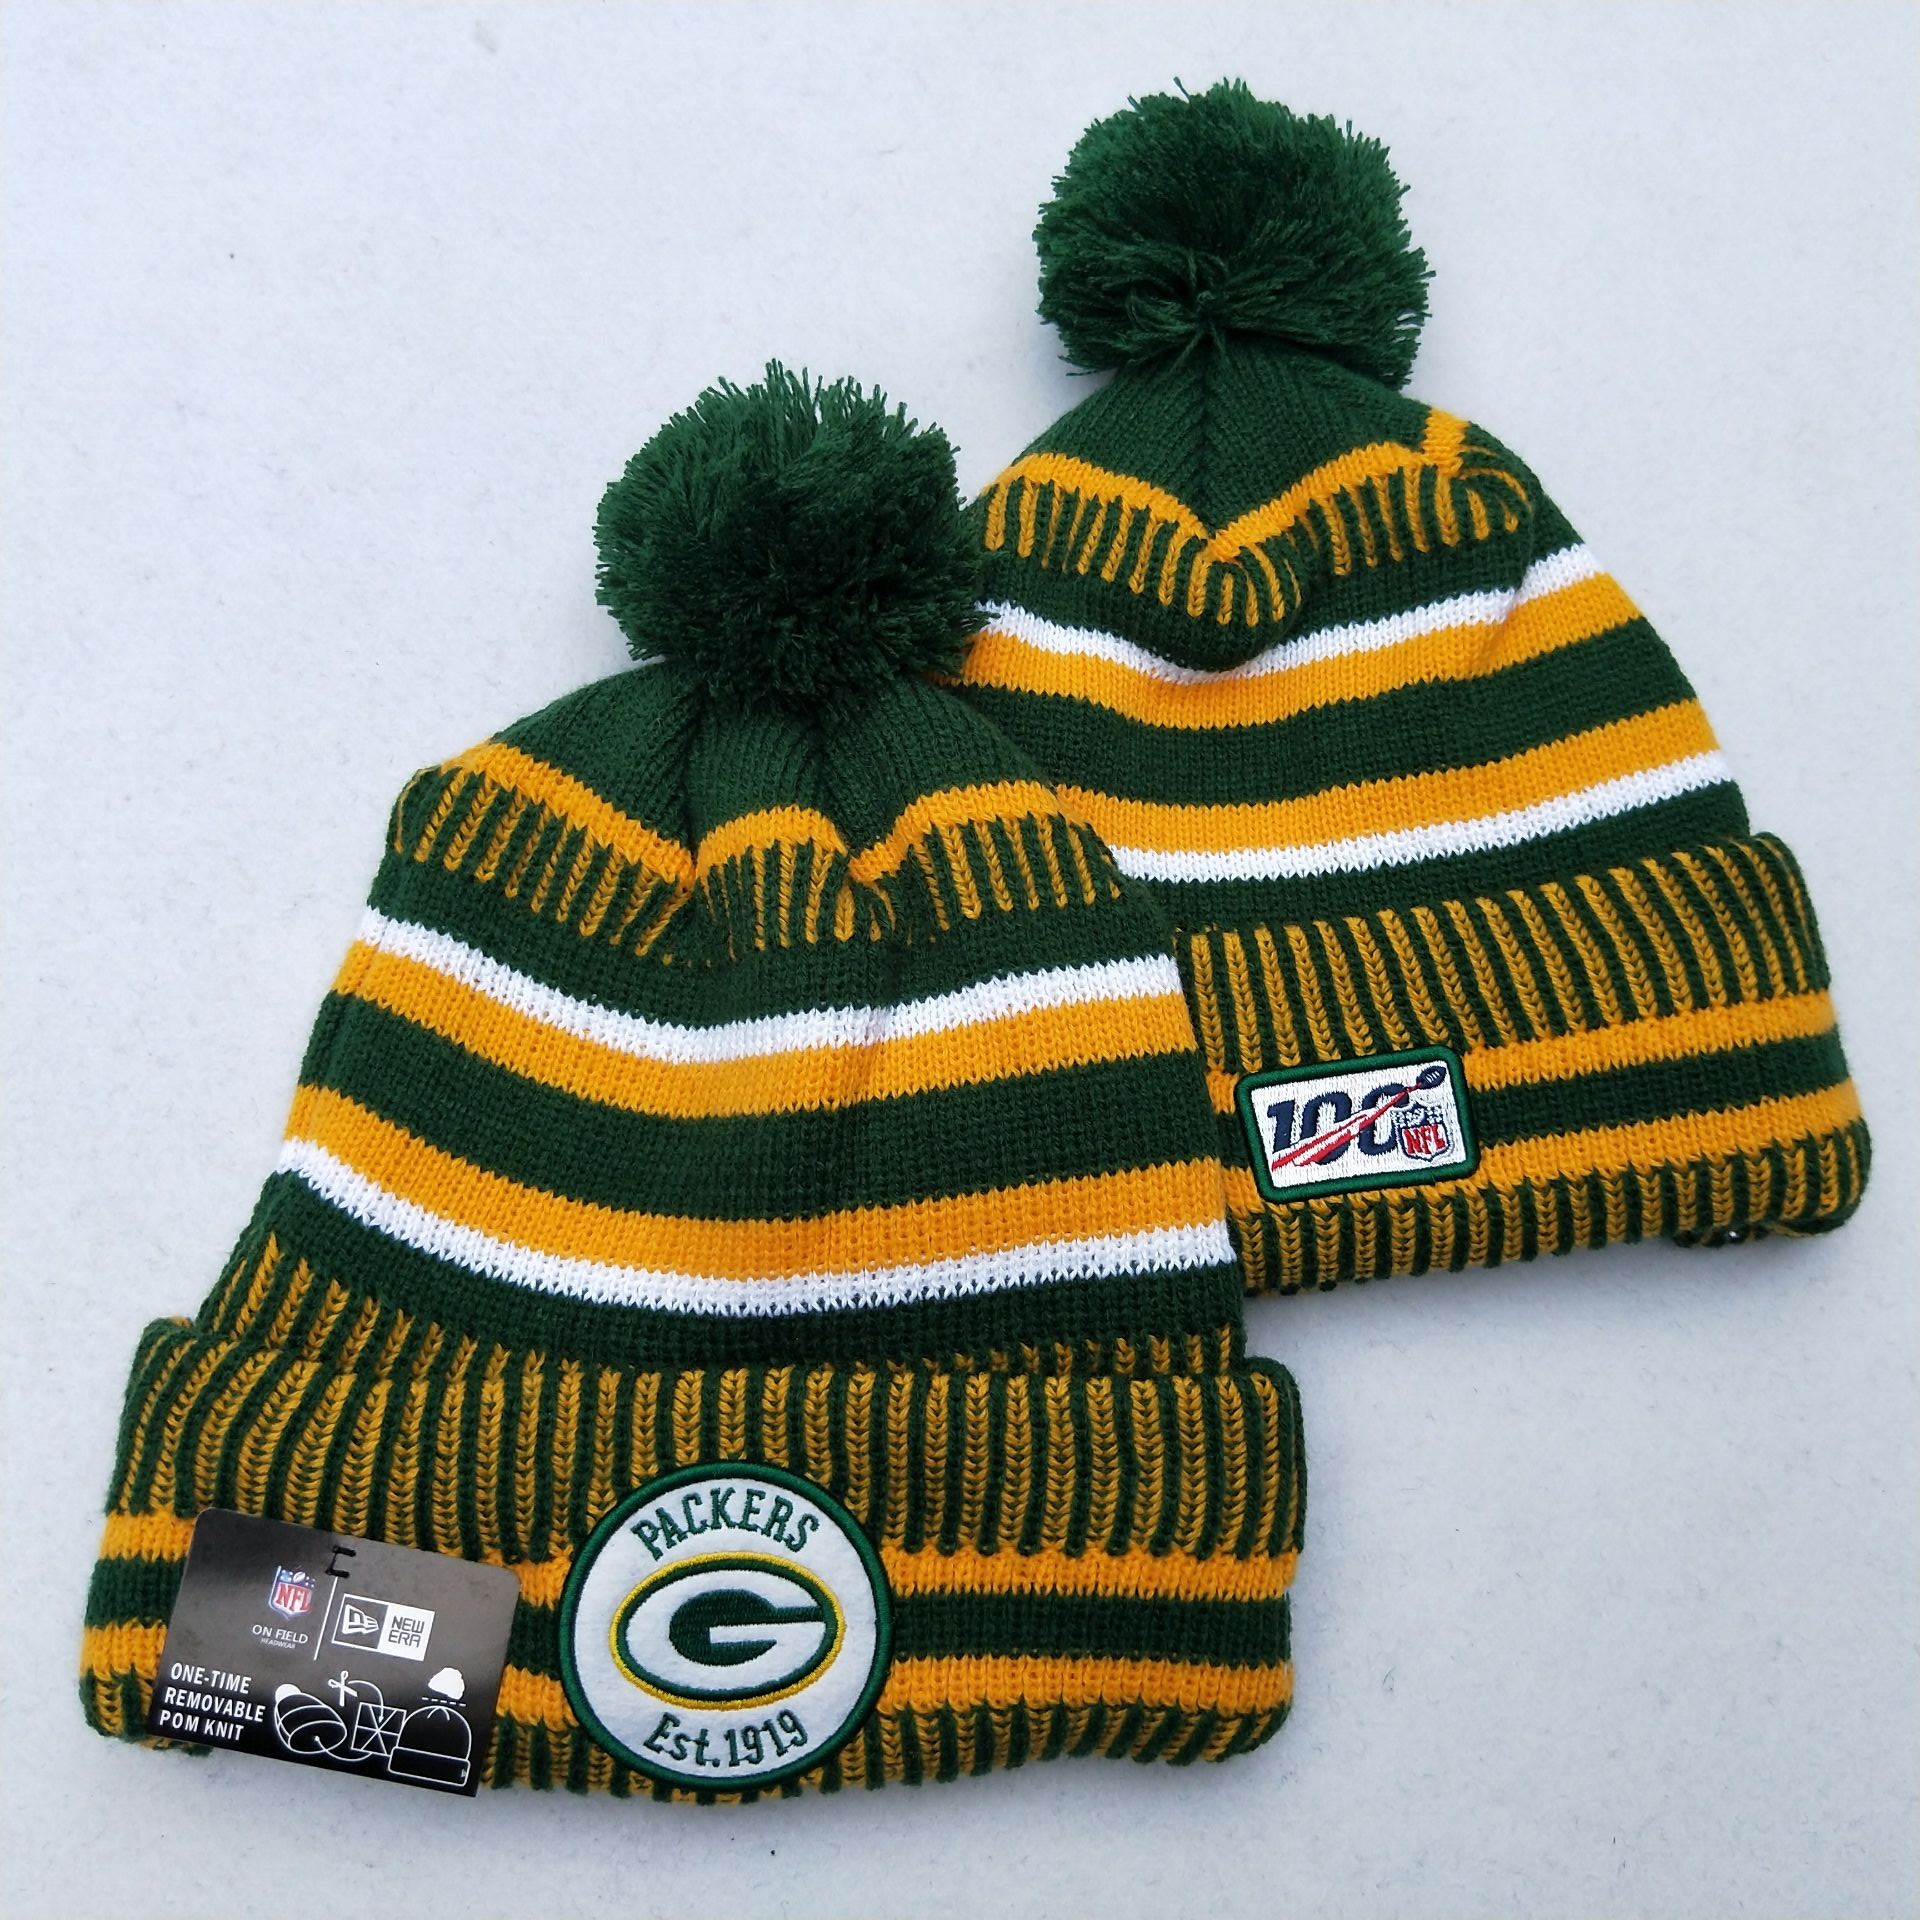 Packers Team Logo Green Yellow 100th Season Pom Knit Hat YD